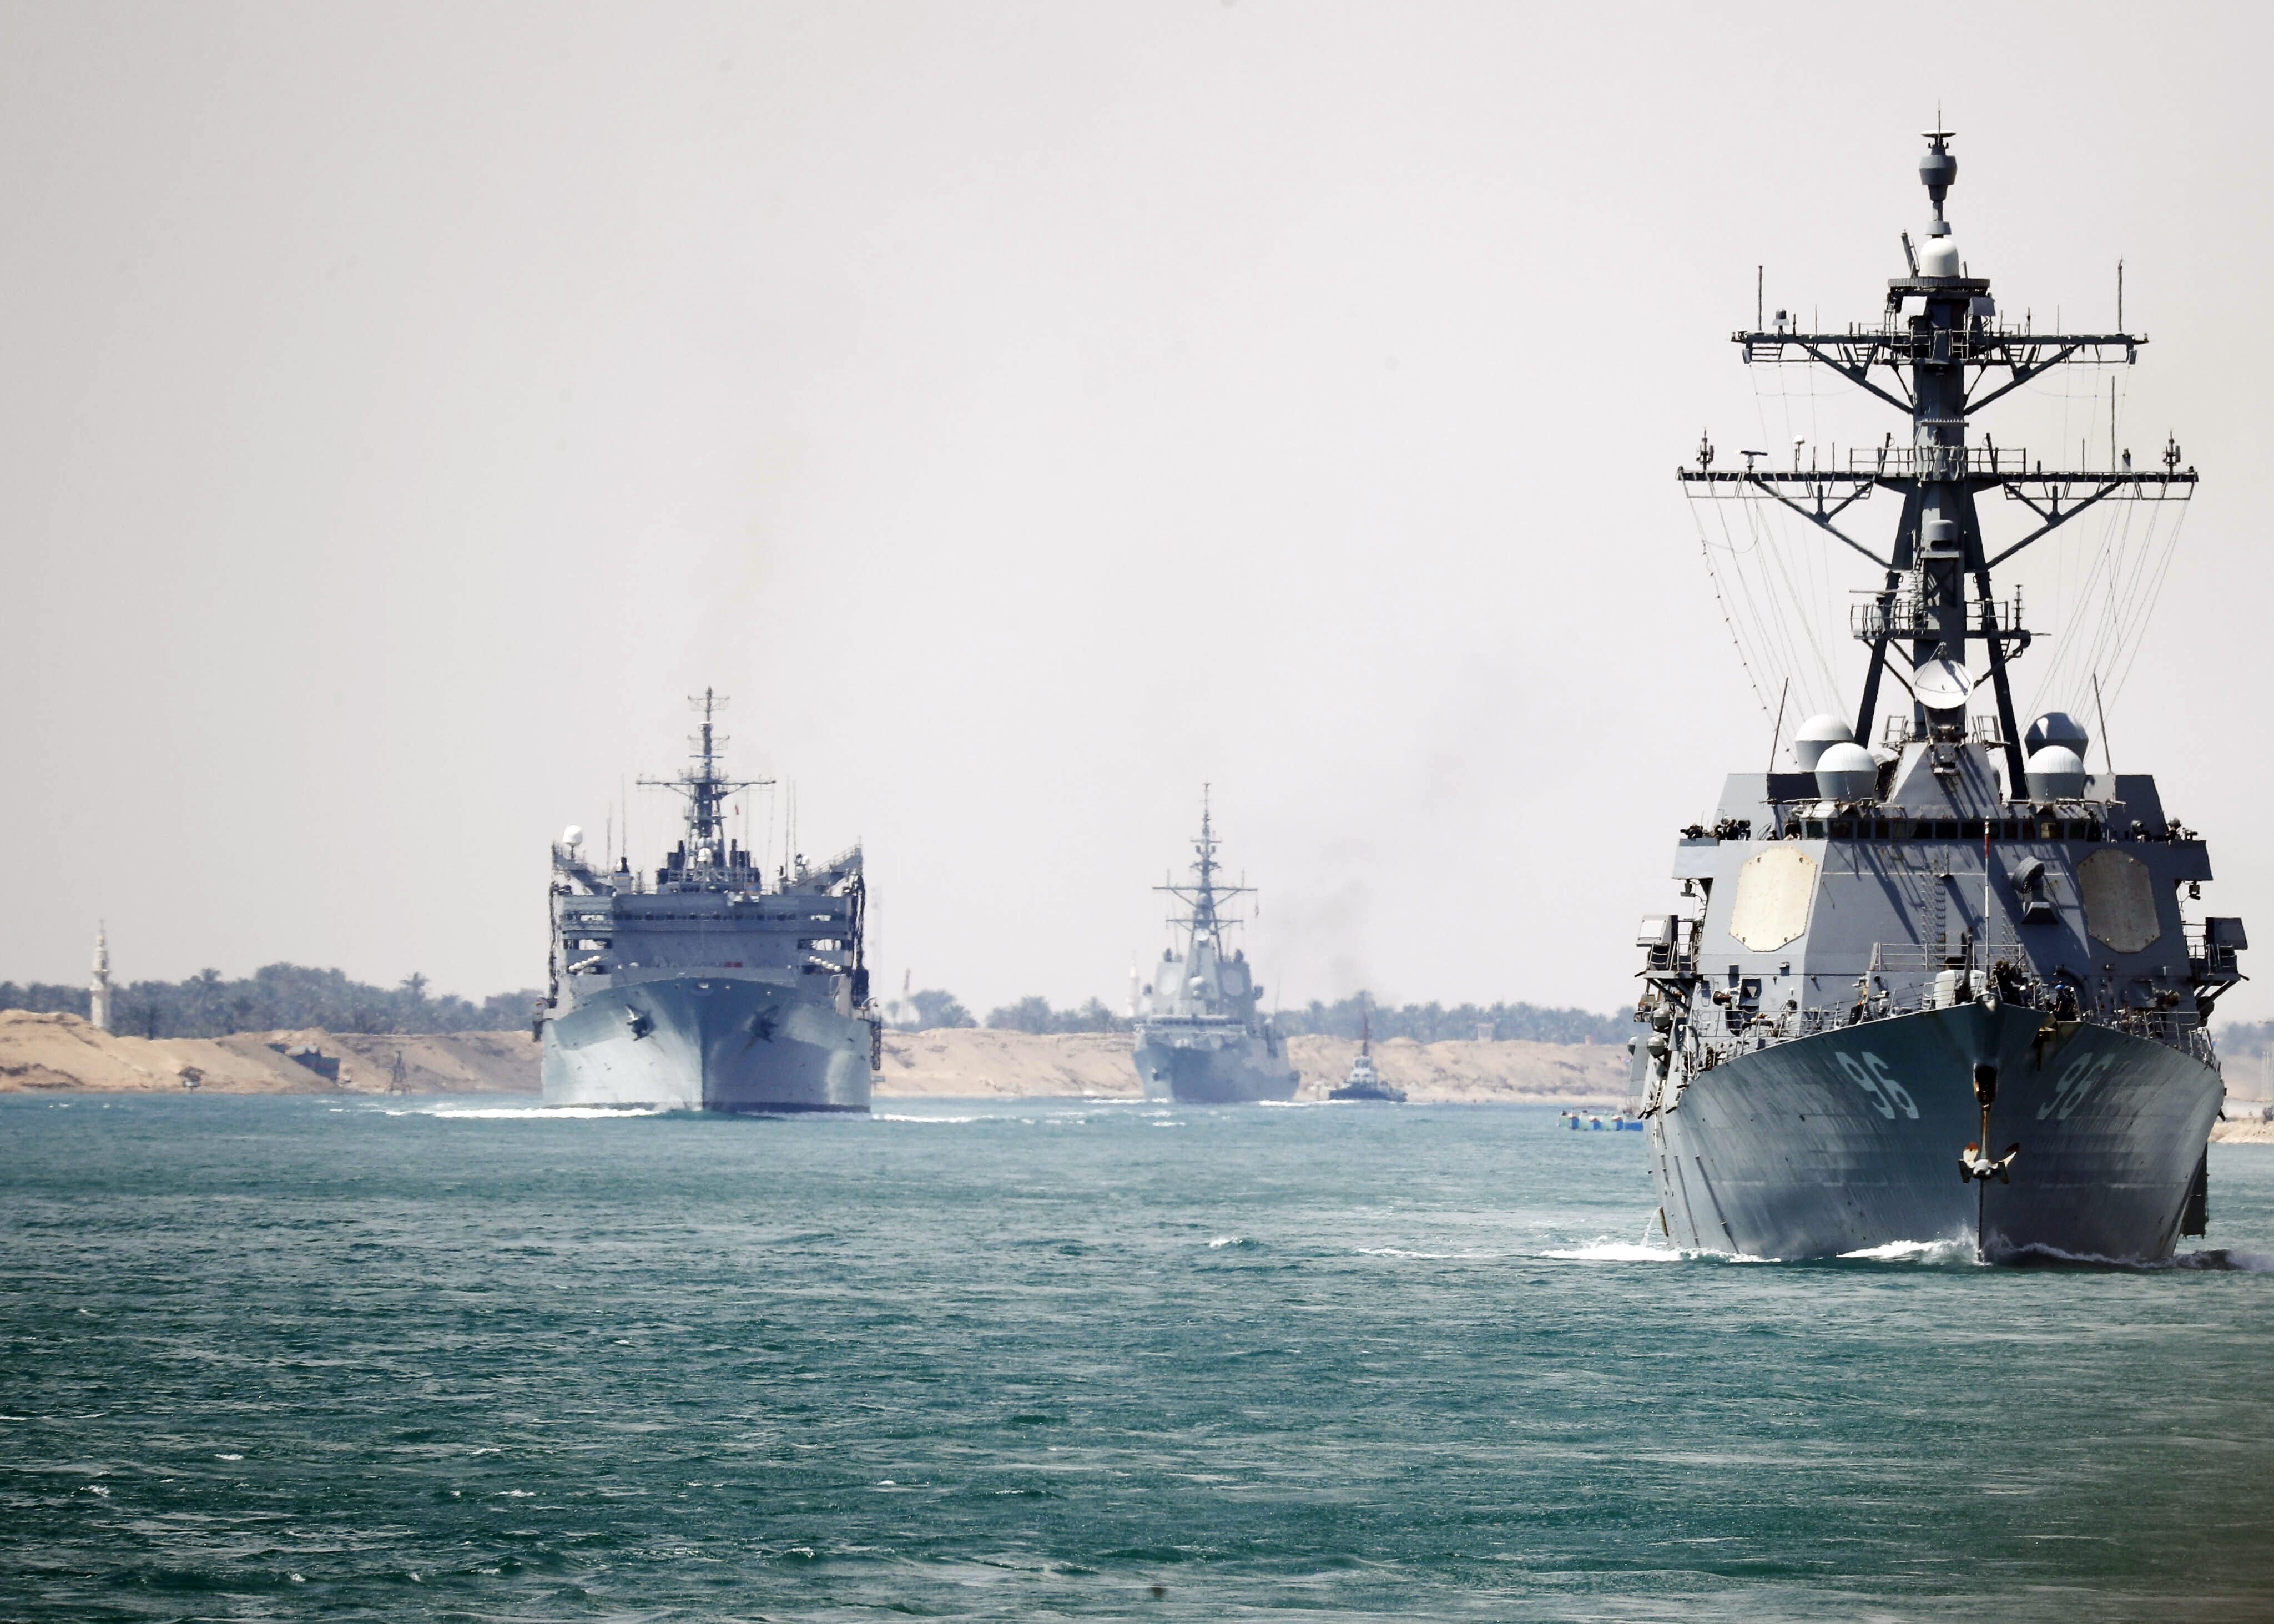 In this photo provided by the U.S. Navy, the Abraham Lincoln Carrier Strike Group transits the Suez Canal, Thursday, May 9, 2019. The Abraham Lincoln Carrier Strike Group is deployed to the U.S. Central Command area of responsibility. With Abraham Lincoln as the flagship, deployed strike group assets include staffs, ships and aircraft of Carrier Strike Group 12, Destroyer Squadron 2, USS Leyte Gulf and Carrier Air Wing 7, as well as the Spanish navy Alvaro de Bazan-class frigate ESPS Mendez Nunez. (Petty Officer 3rd Class Darion Chanelle Triplett/U.S. Navy via AP)